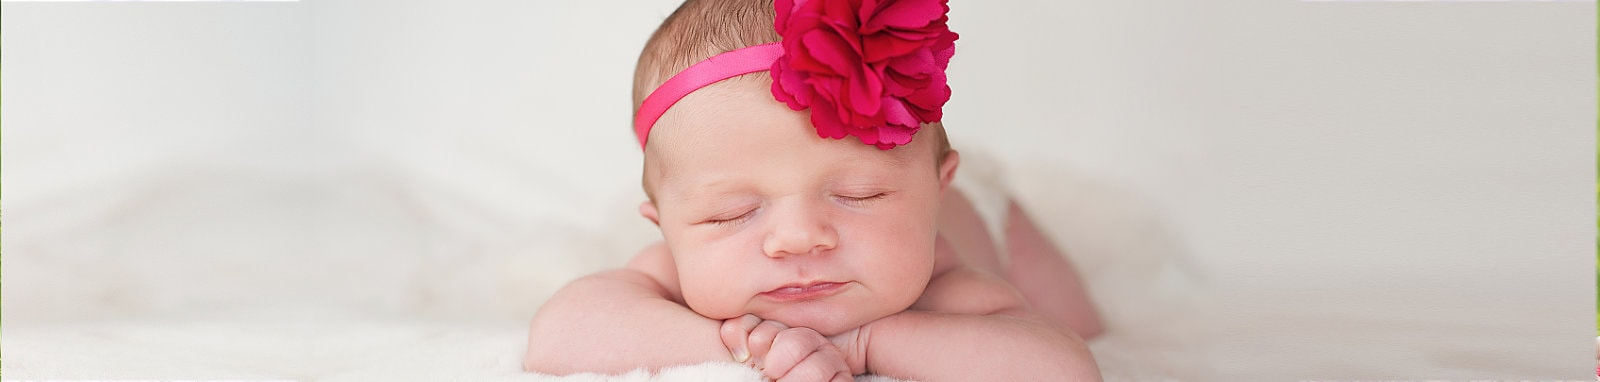 Newborn with Flower Headband